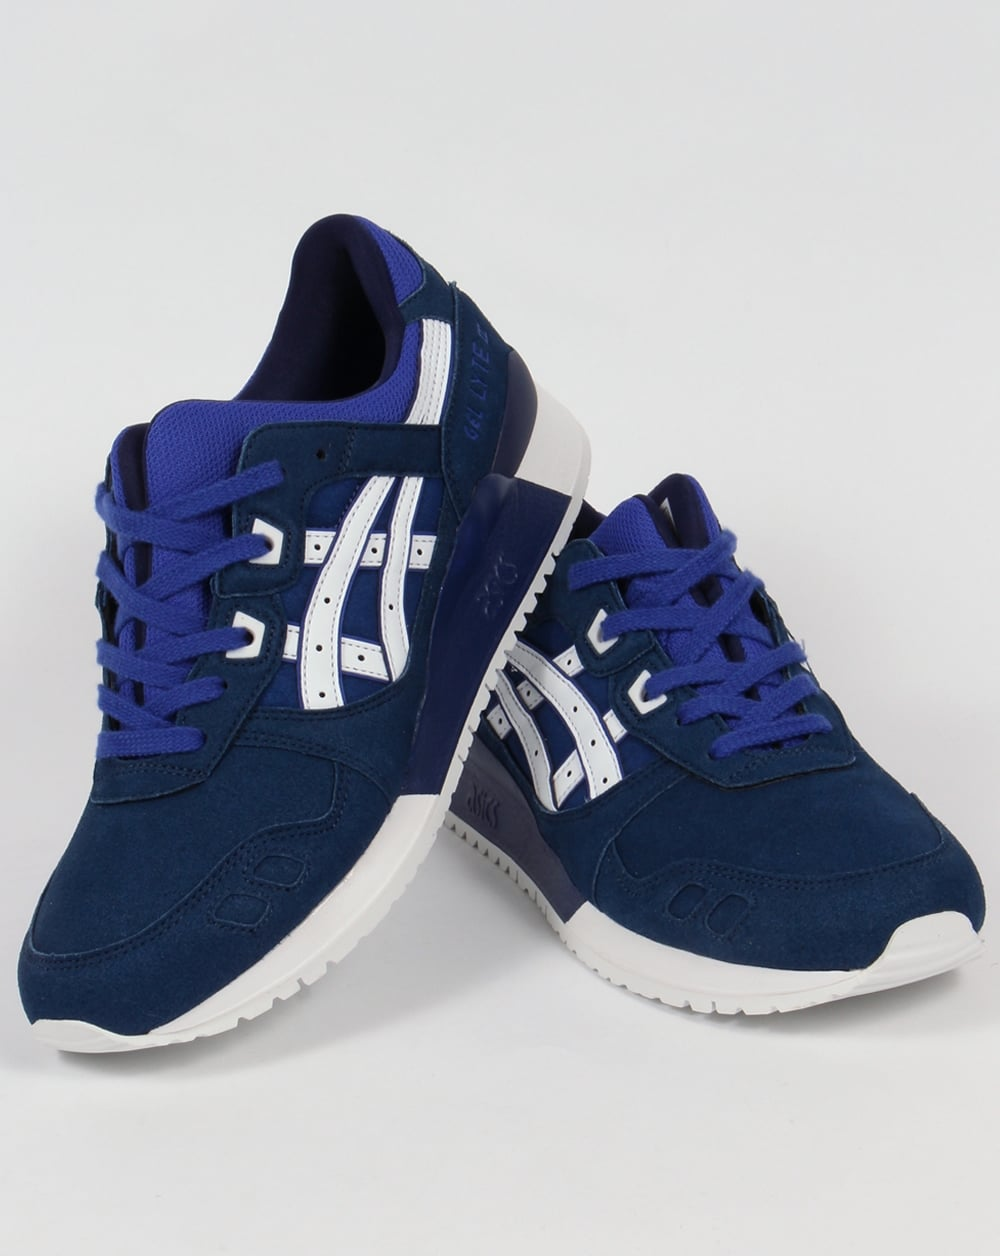 asics gel lyte iii trainers blue white 3 shoes runners sneakers. Black Bedroom Furniture Sets. Home Design Ideas